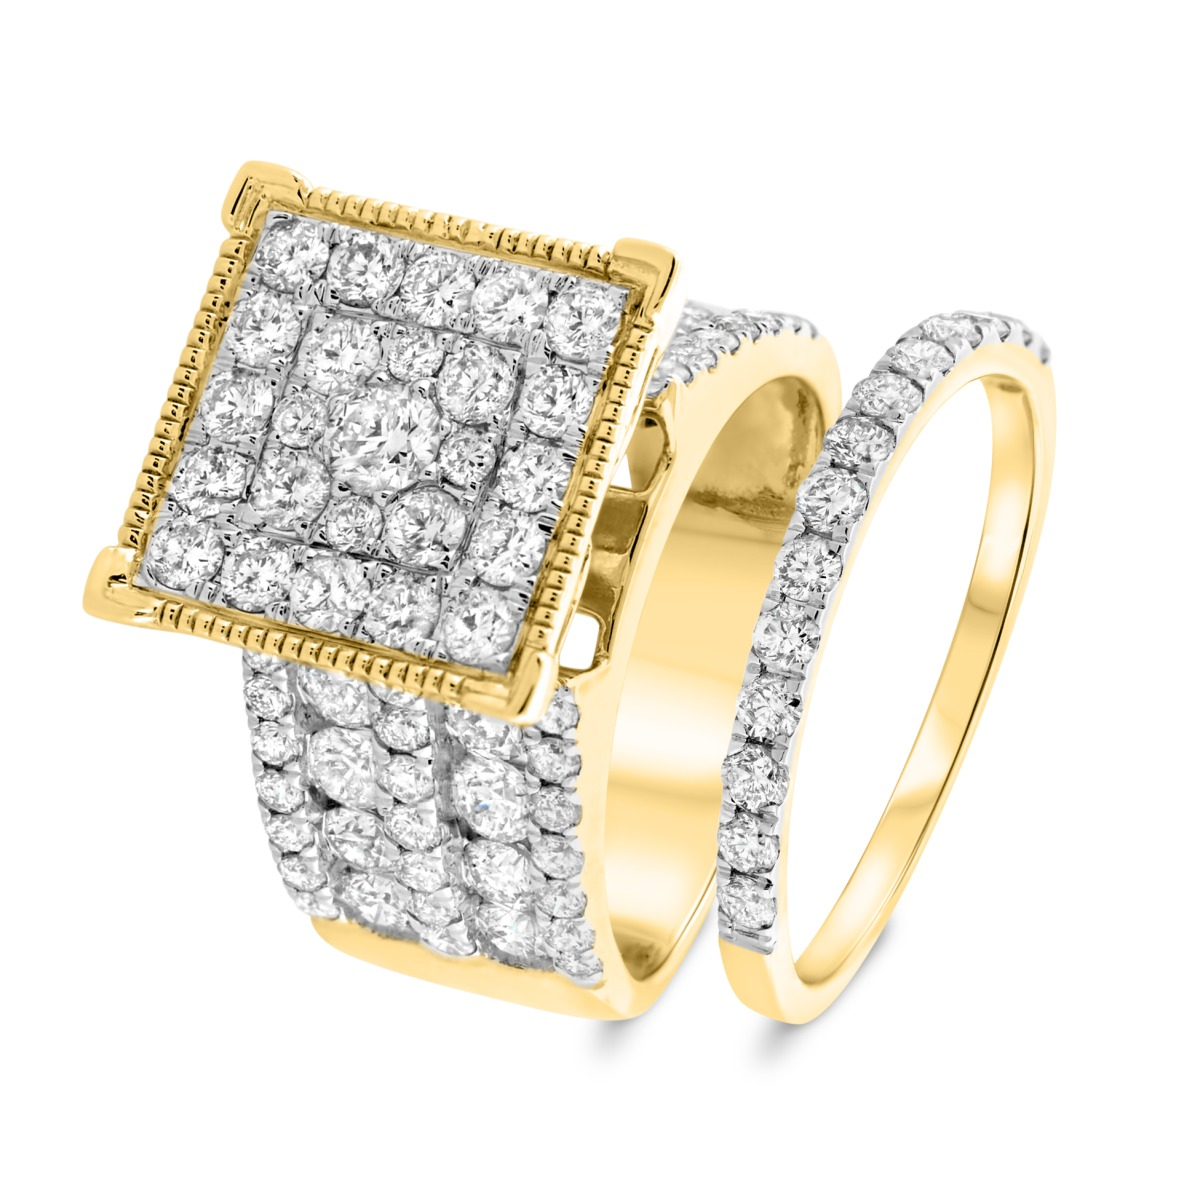 3 3/8 Carat T.W. Diamond Matching Bridal Ring Set 14K Yellow Gold